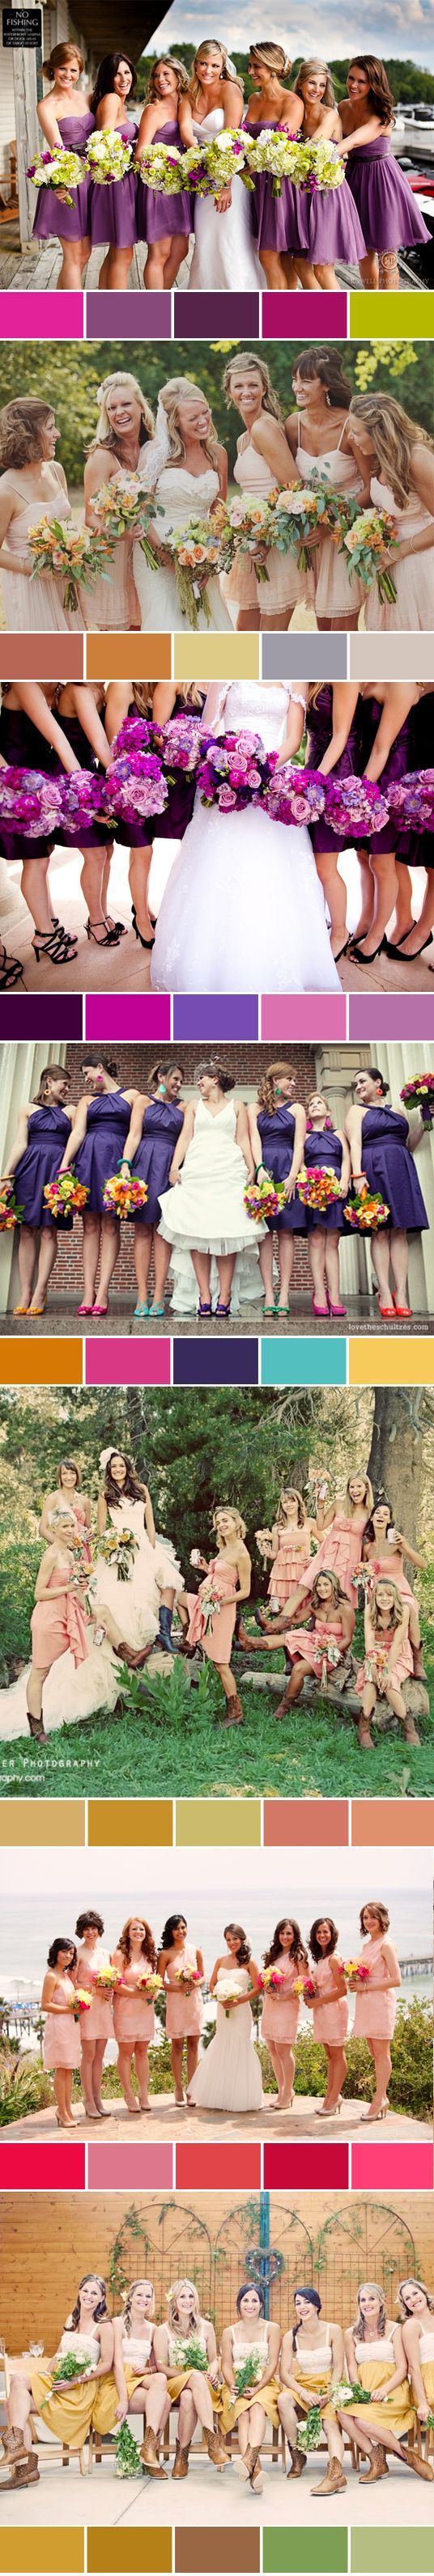 Amazing wedding color schemes fairytales can come true 3 good website for wedding color schemes i like the purple bridesmaid dresses with diffferent colored shoes ombrellifo Image collections